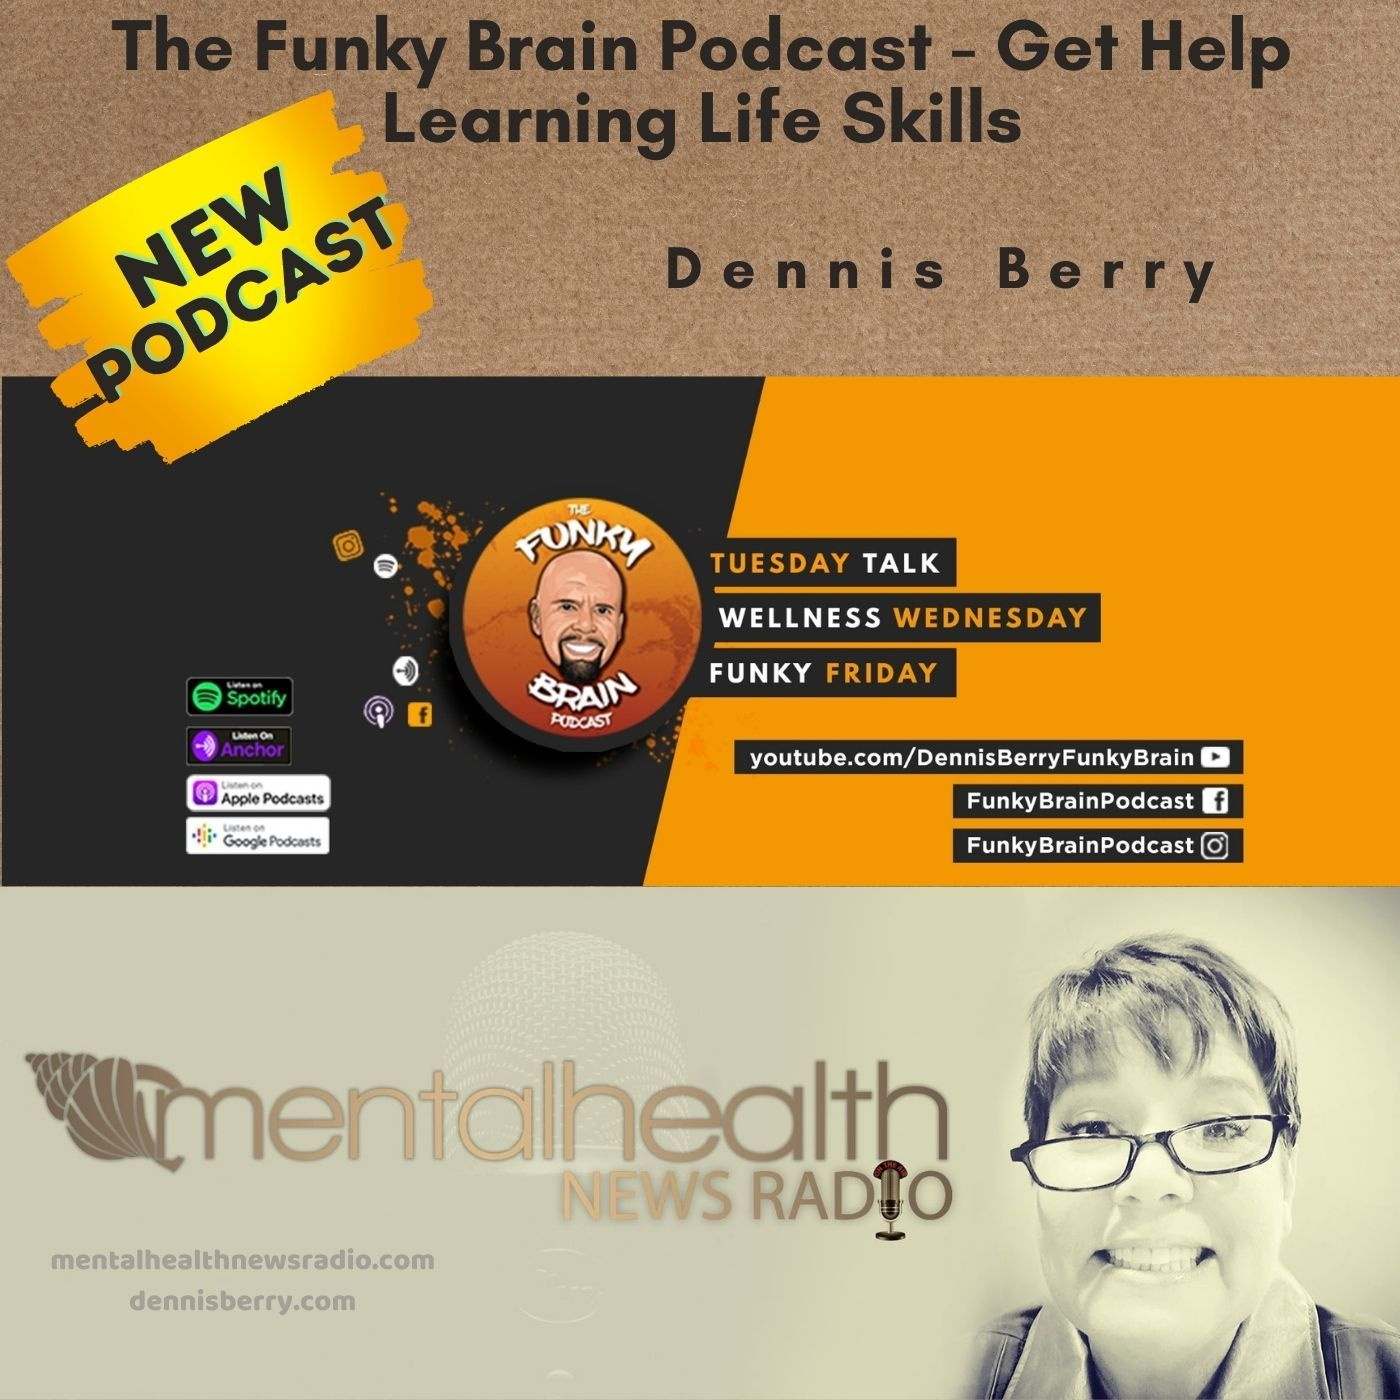 Mental Health News Radio - NEW! The Funky Brain Podcast - Get Help Learning Life Skills